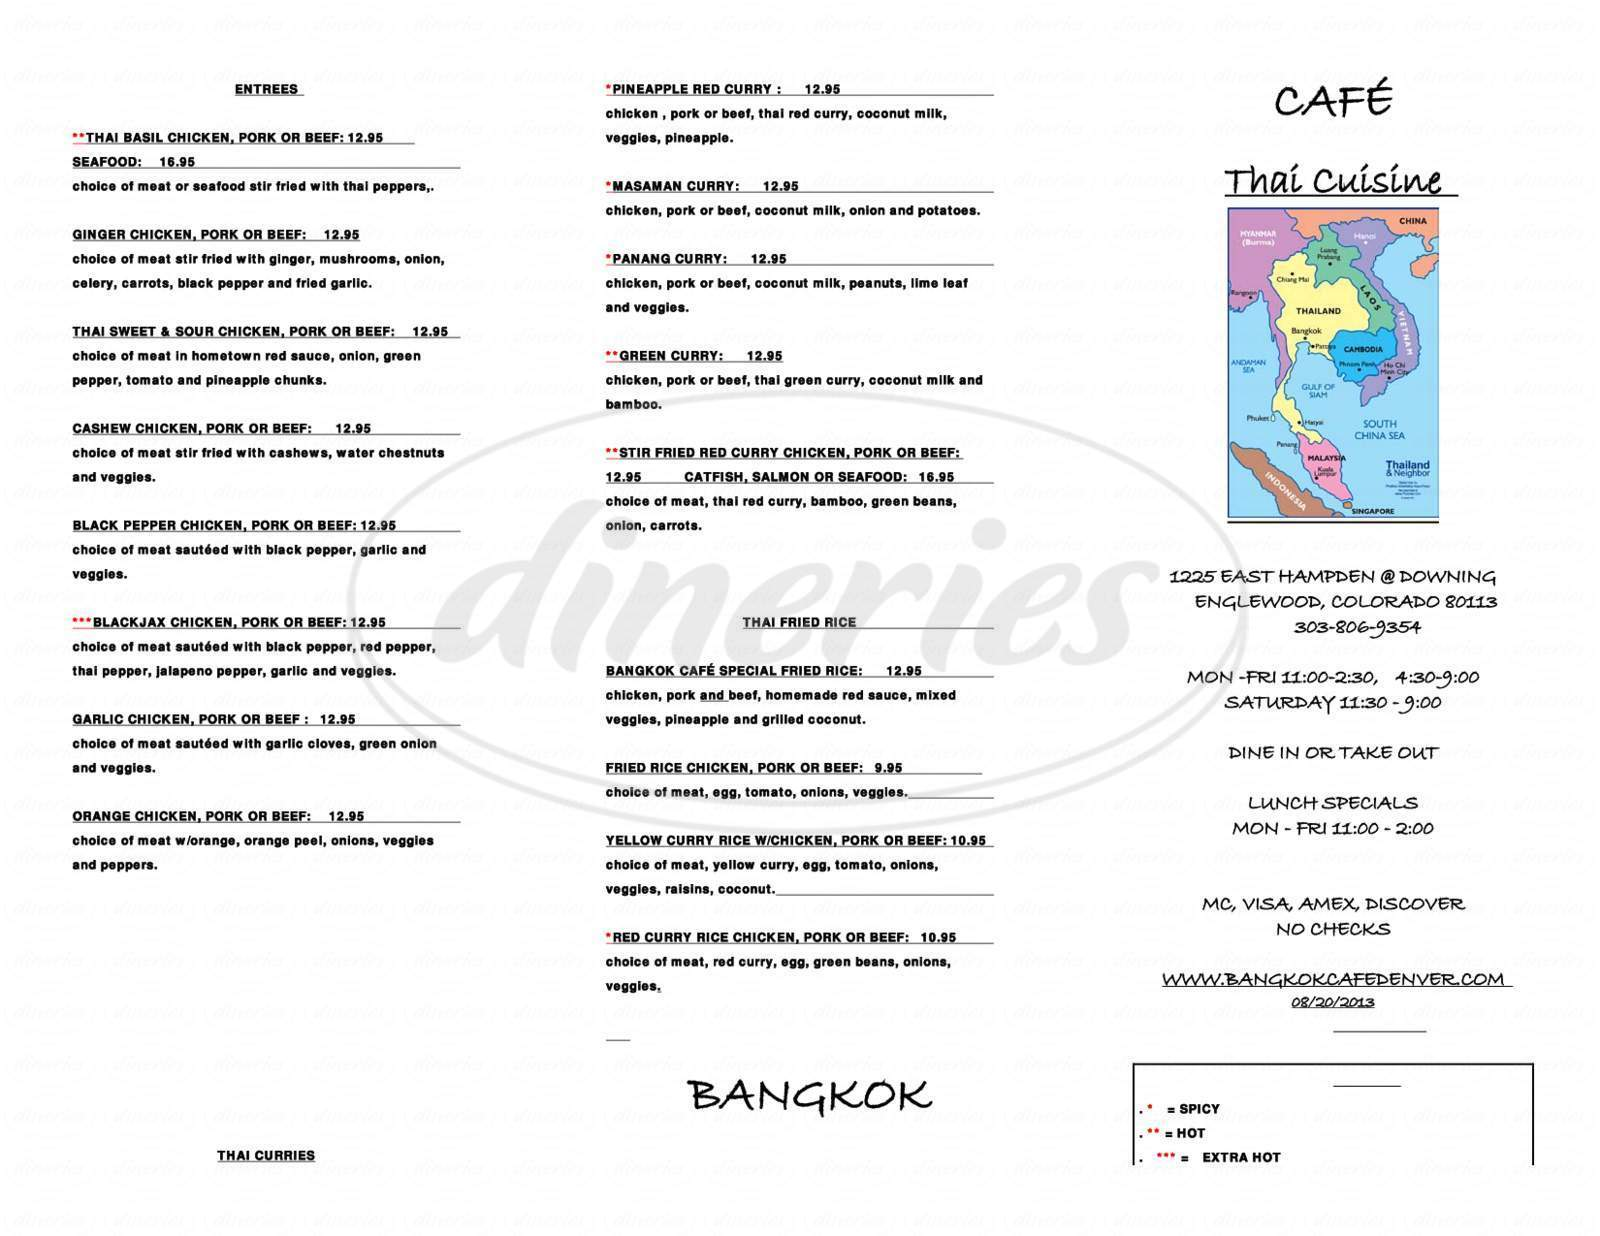 menu for Bangkok Cafe